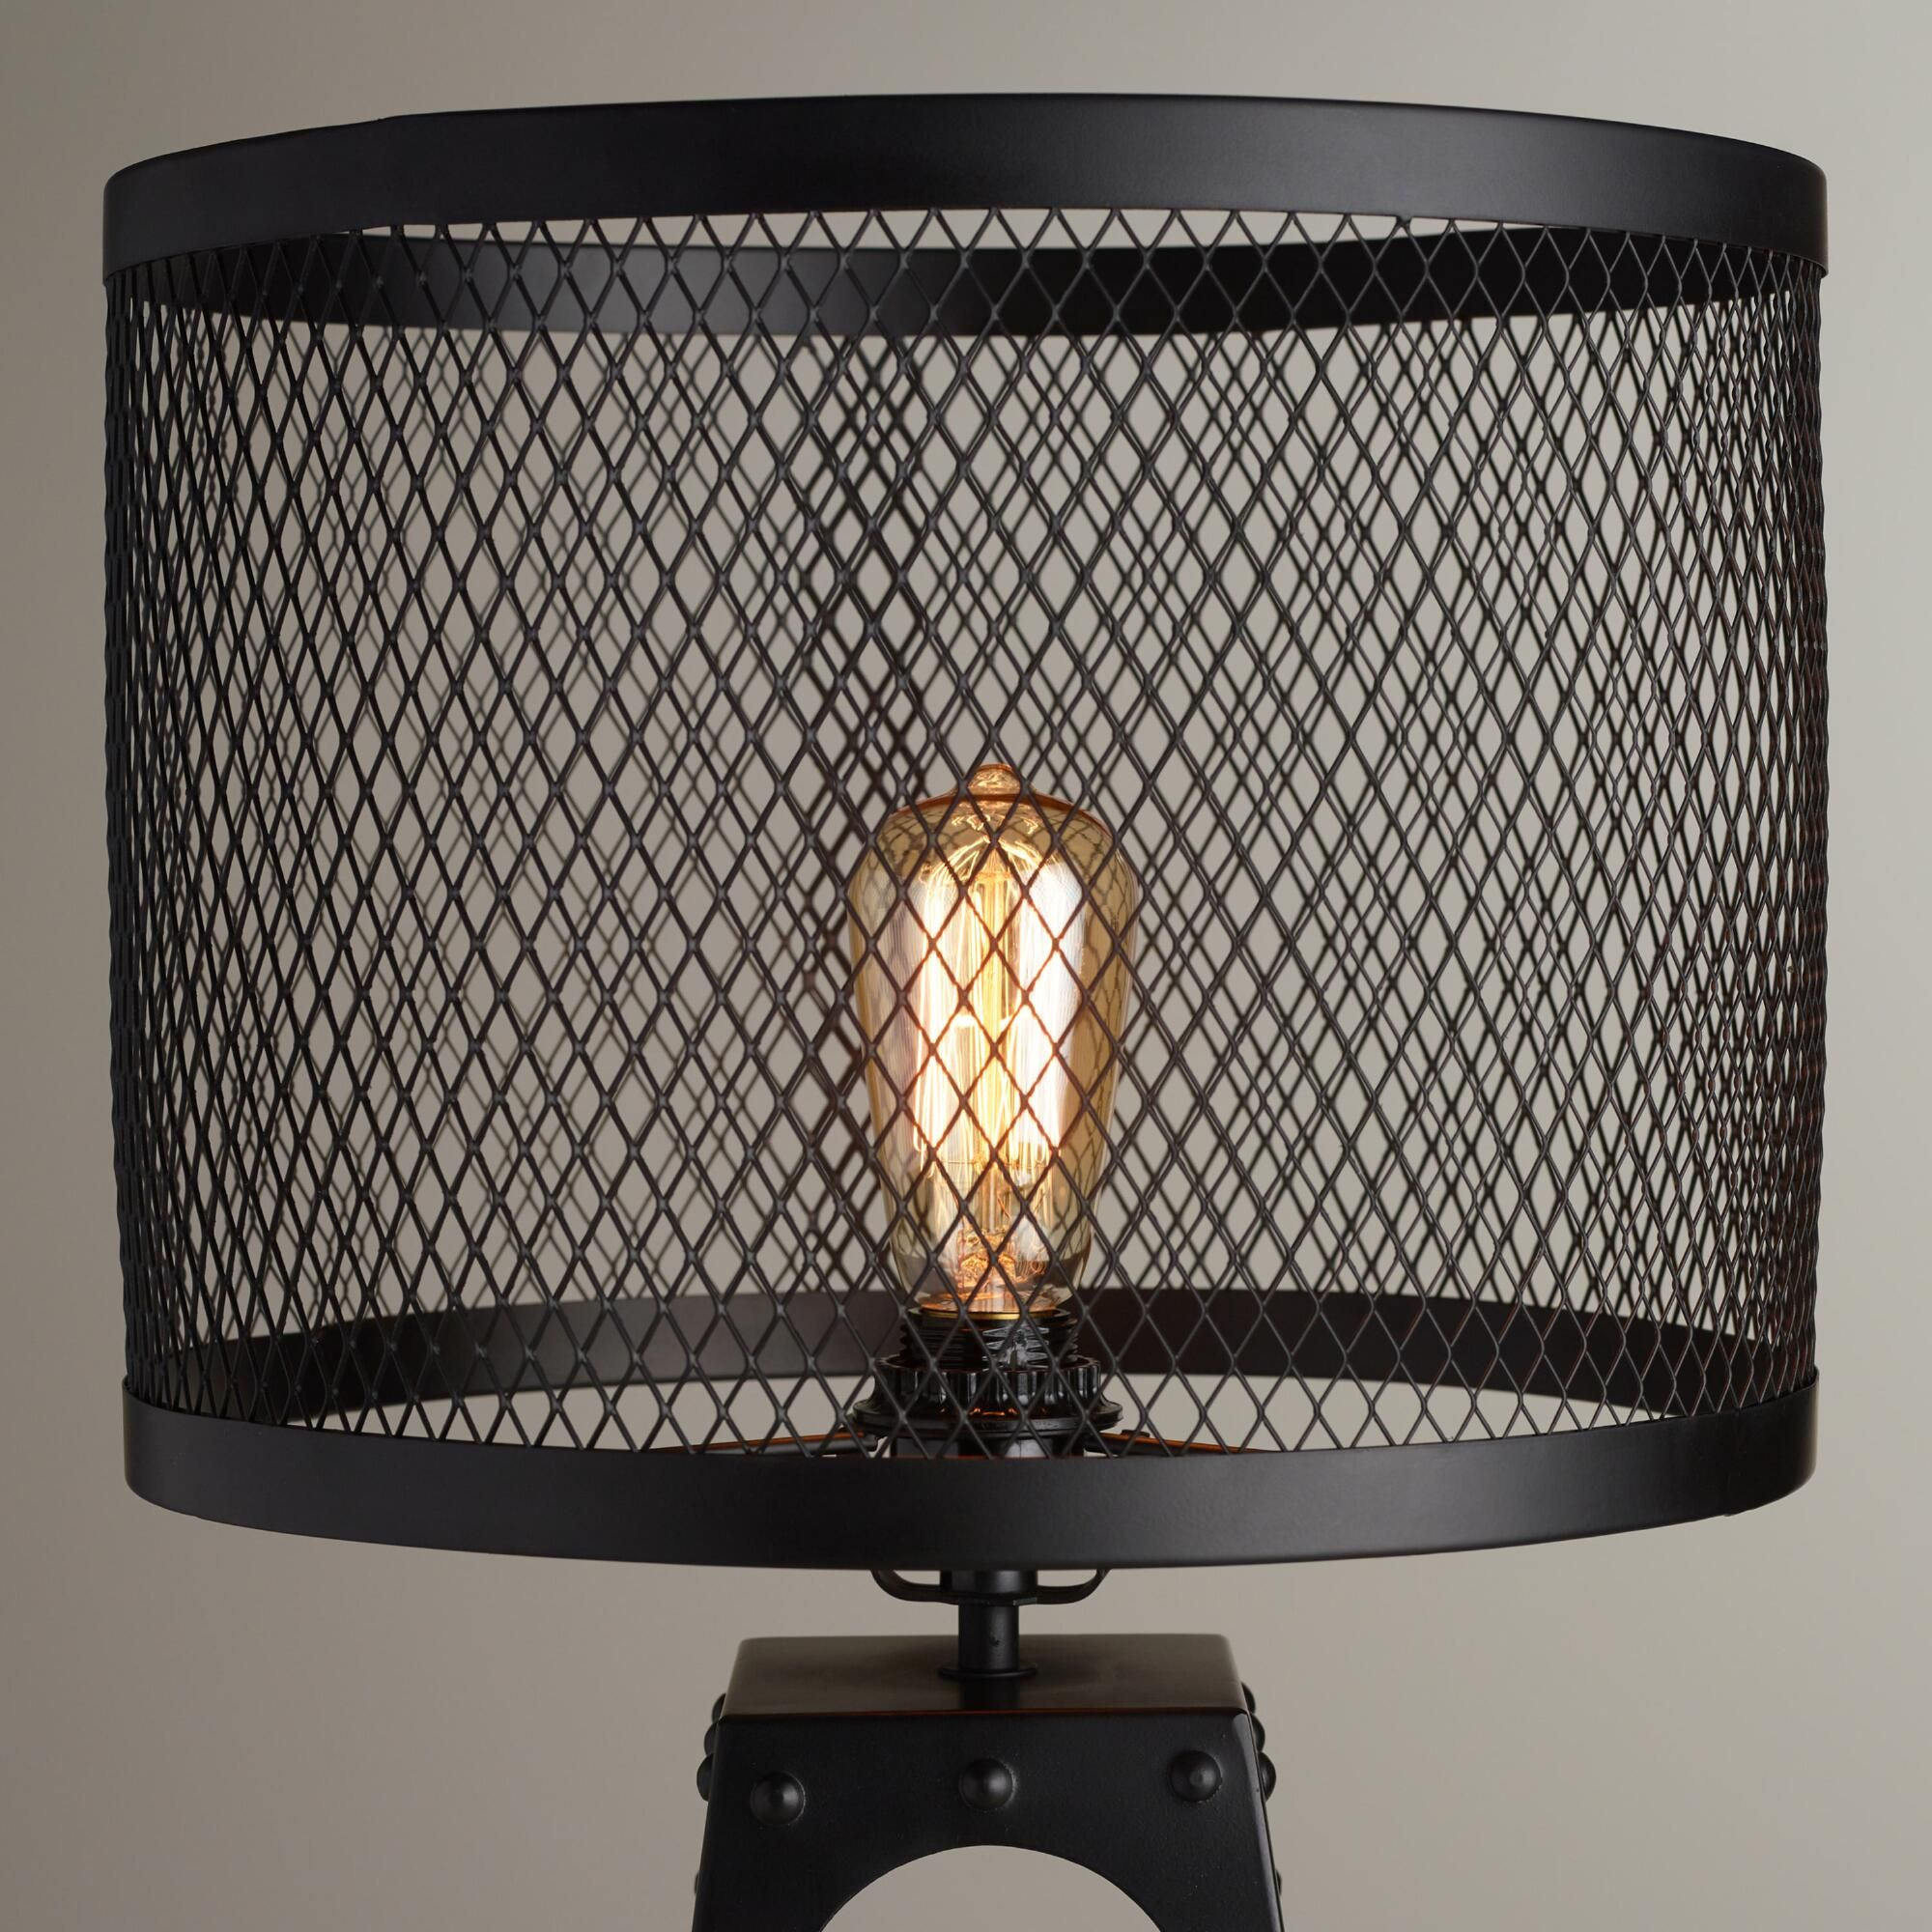 Riveted table lamp shade table lamp shades table lamp base and made of iron with an open lattice design in a matte black finish our attractive riveted table lamp shade is full of modern industrial appeal geotapseo Image collections